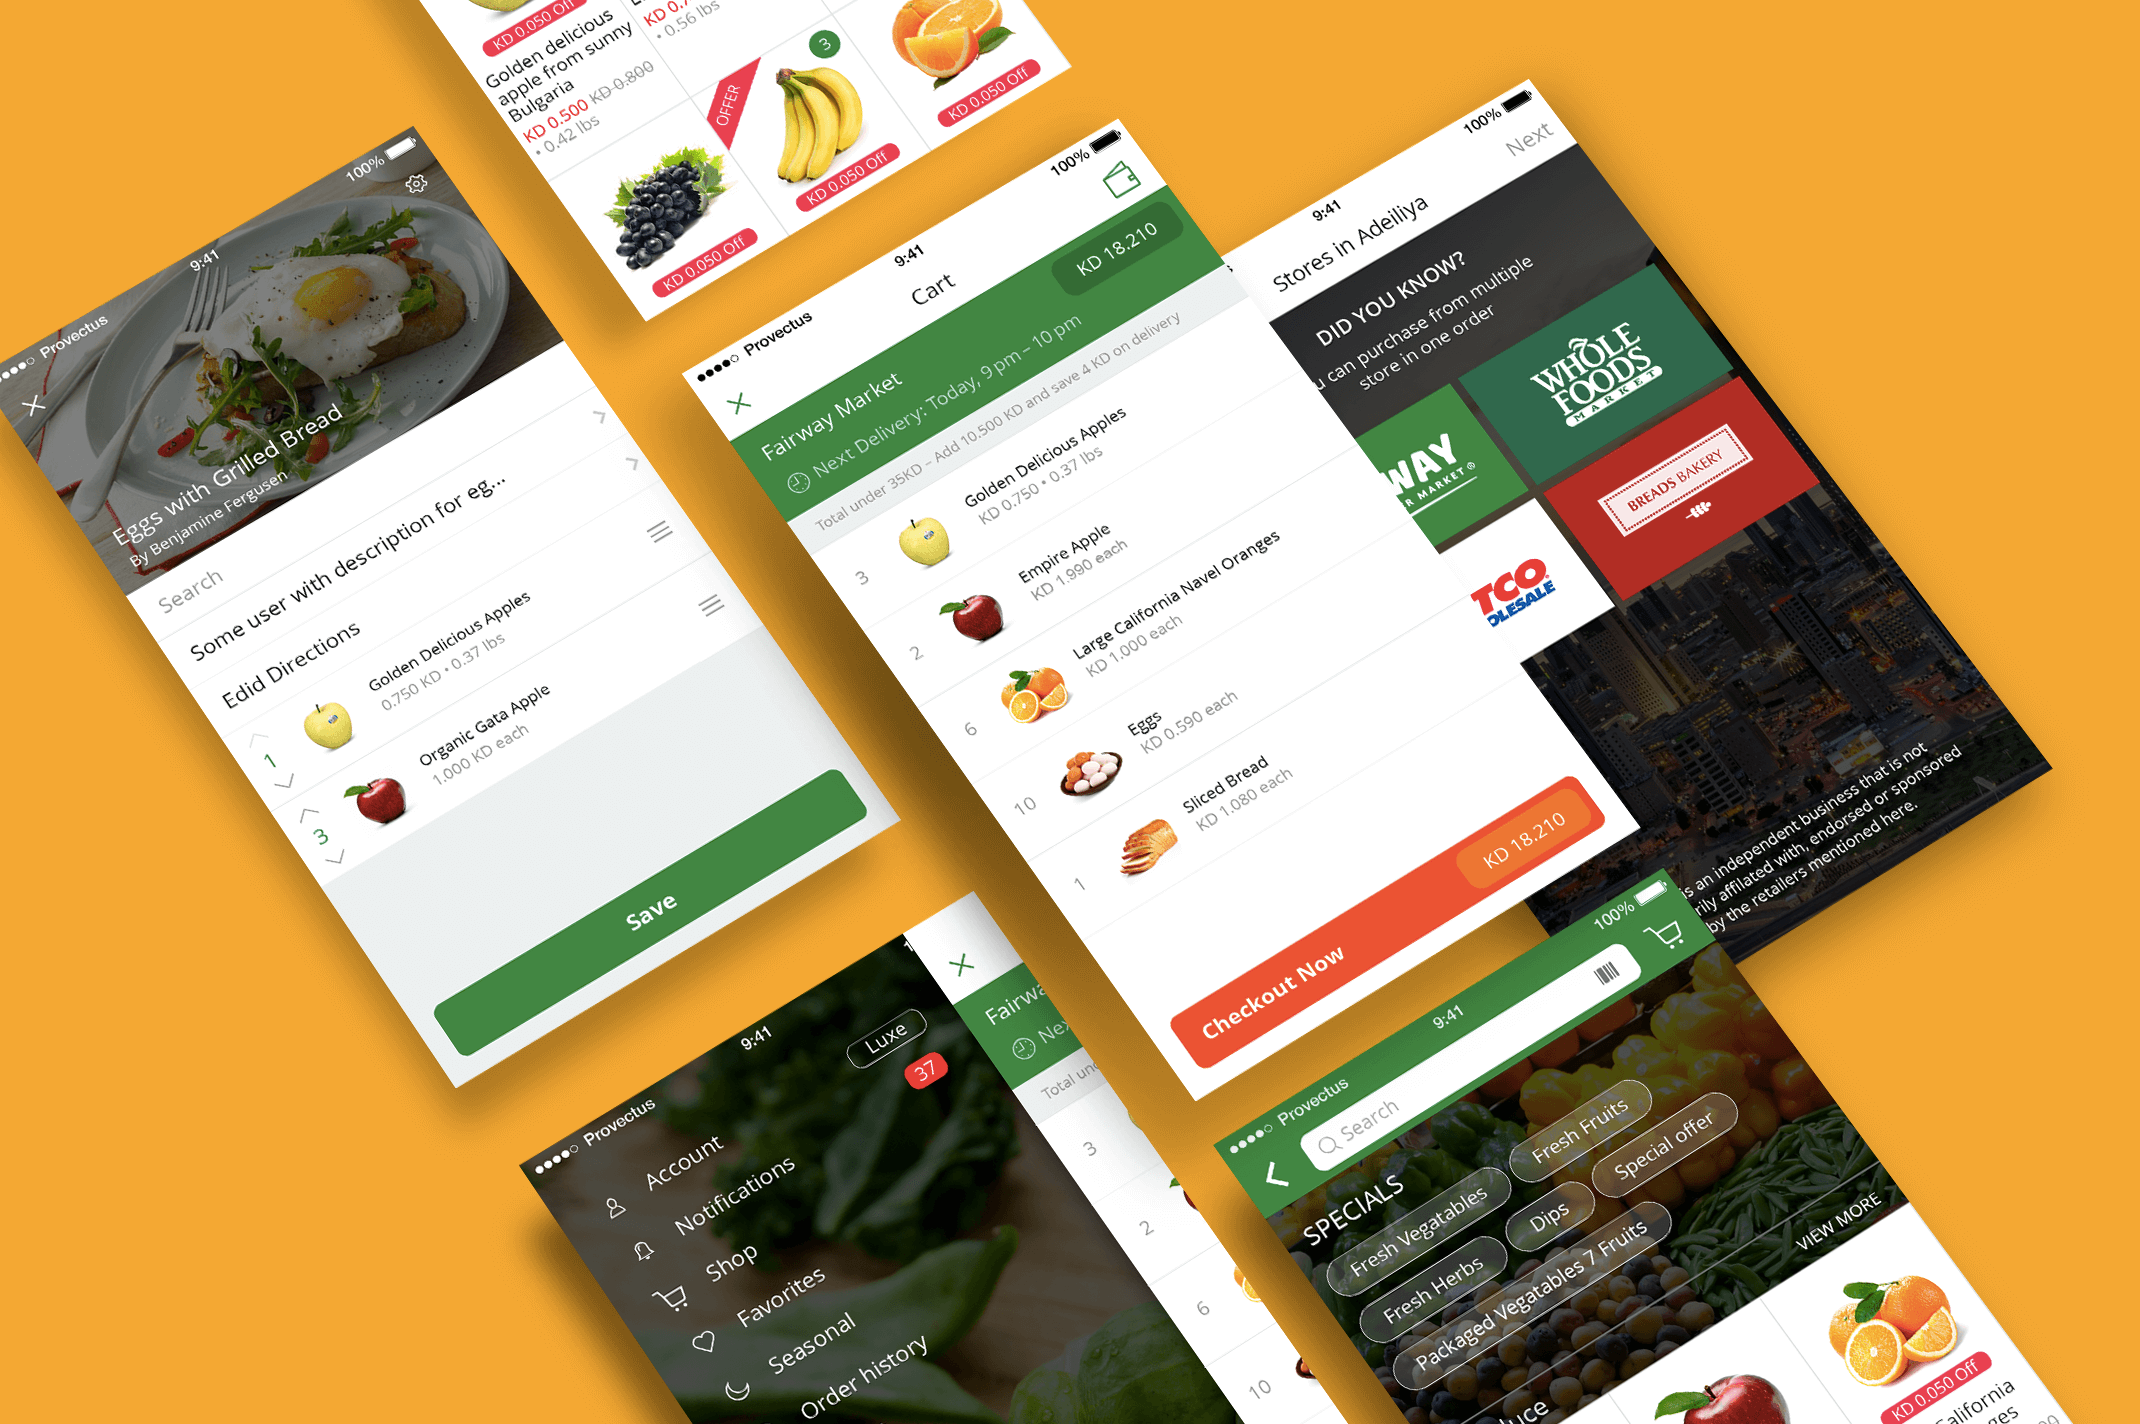 on-demand grocery app screens